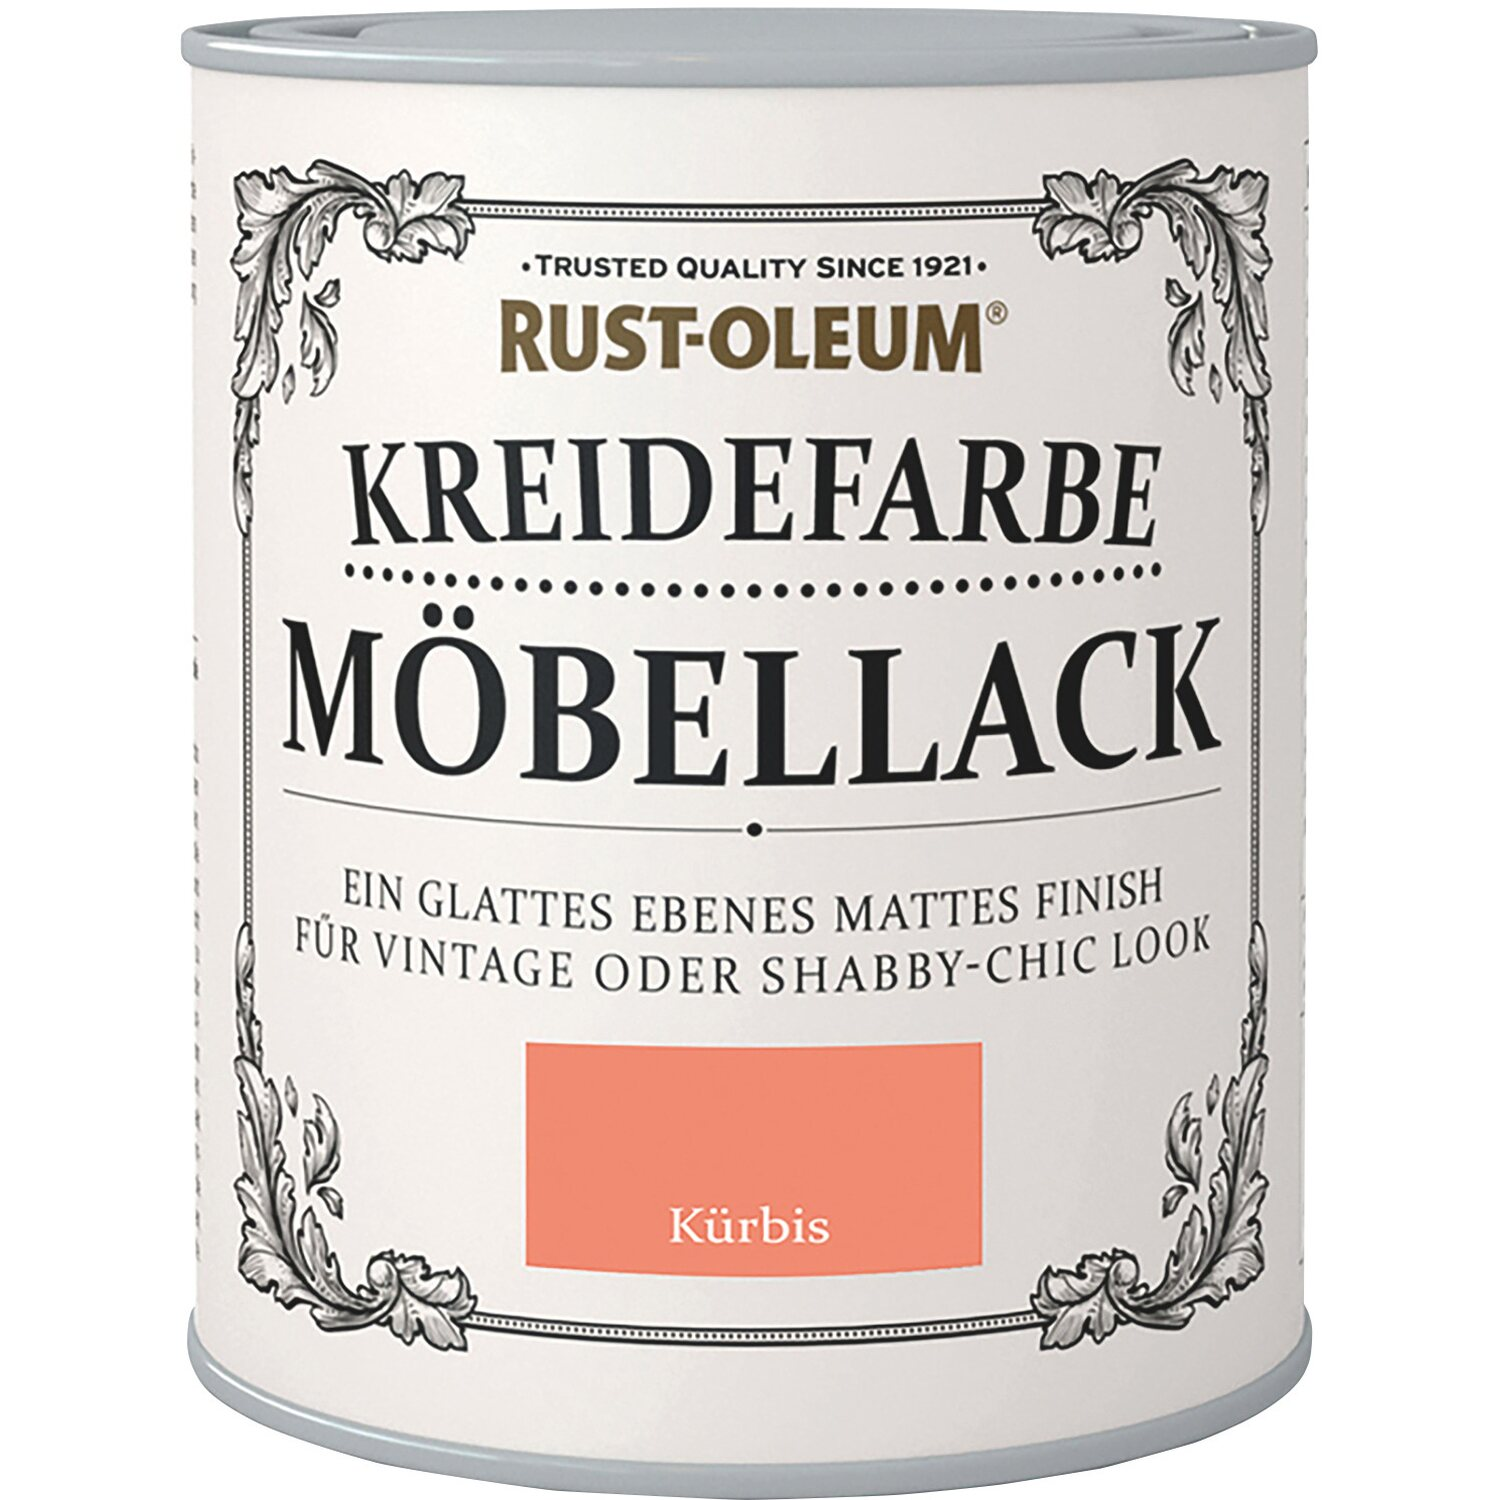 rust oleum kreidefarbe m bellack k rbis matt 750 ml kaufen. Black Bedroom Furniture Sets. Home Design Ideas